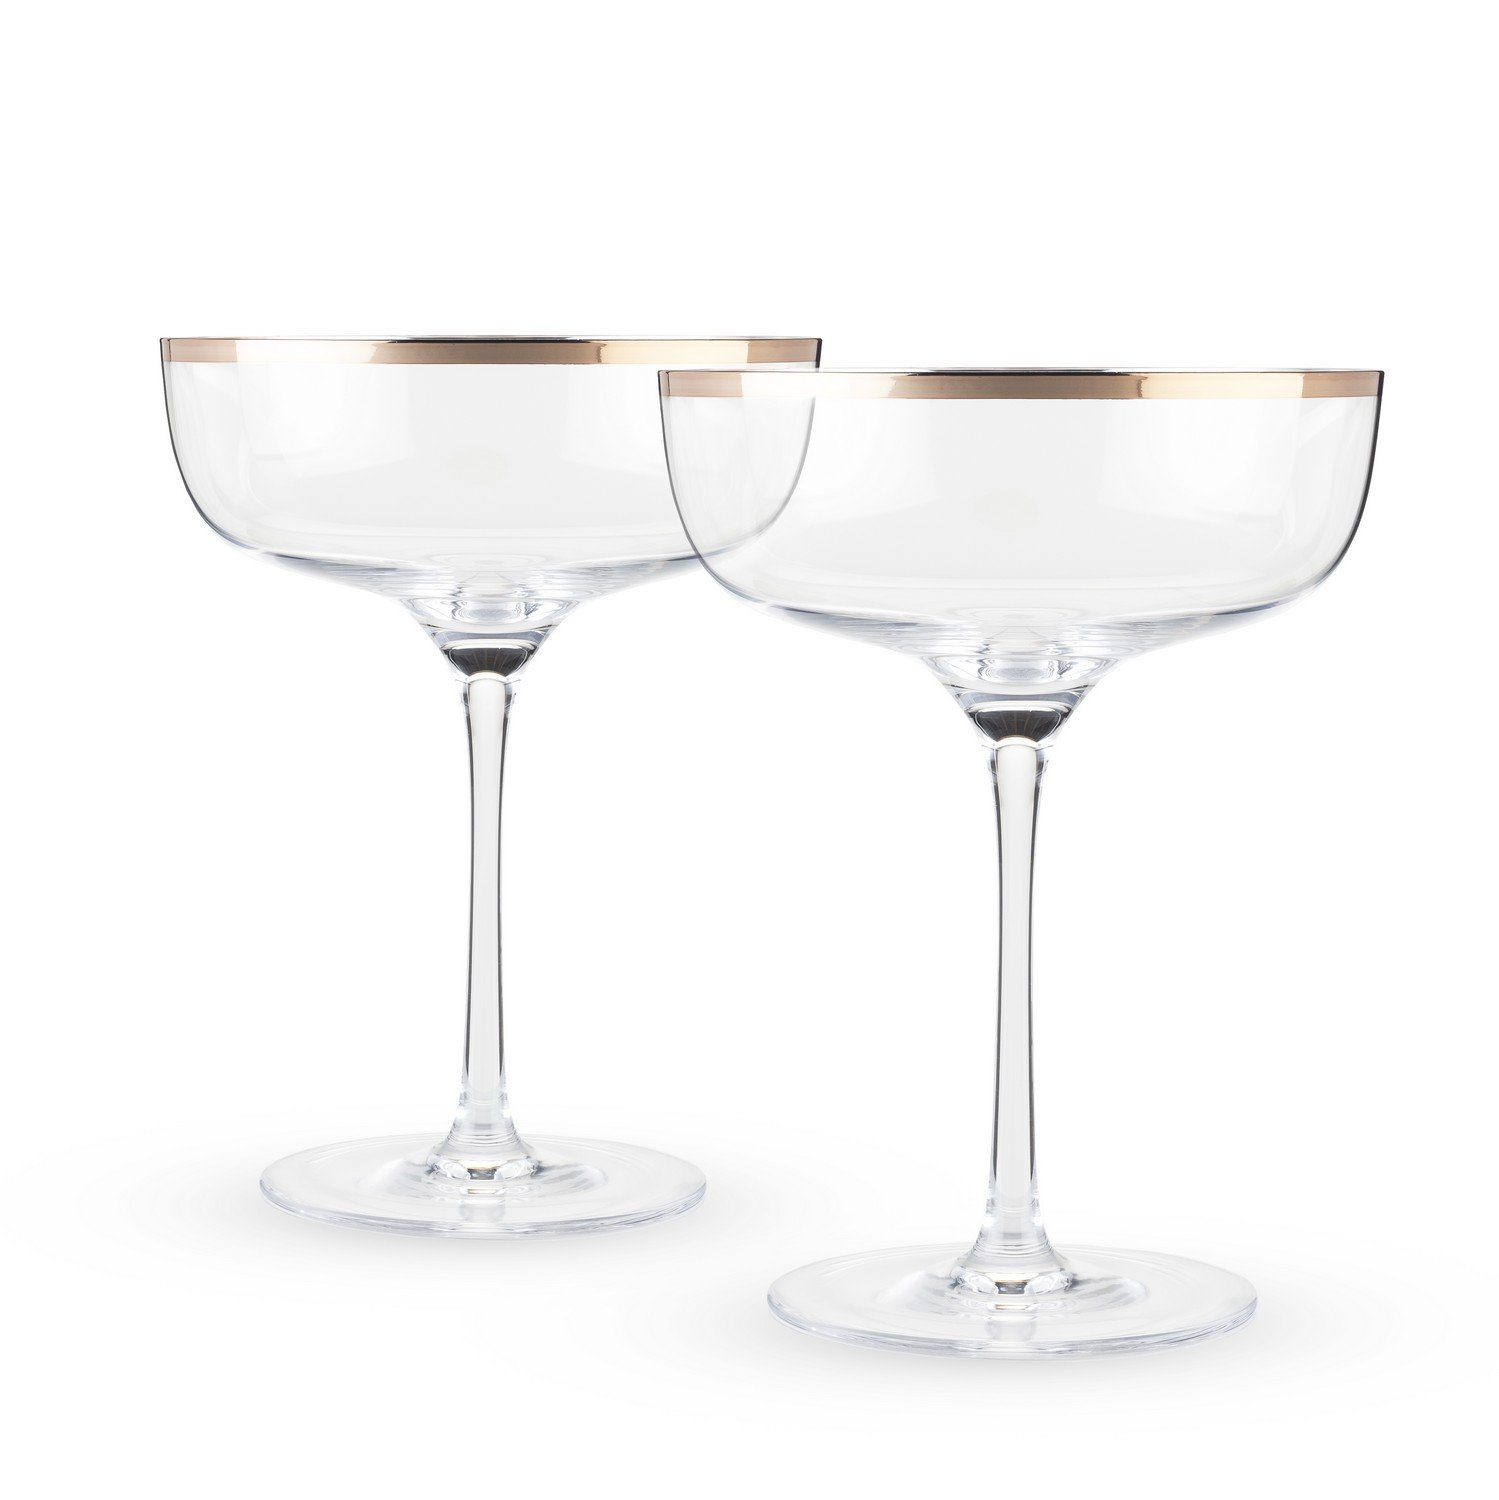 Glass Drinking Glasses, Elegant Copper Rim Crystal Coupe Clear Drink Glasses Set